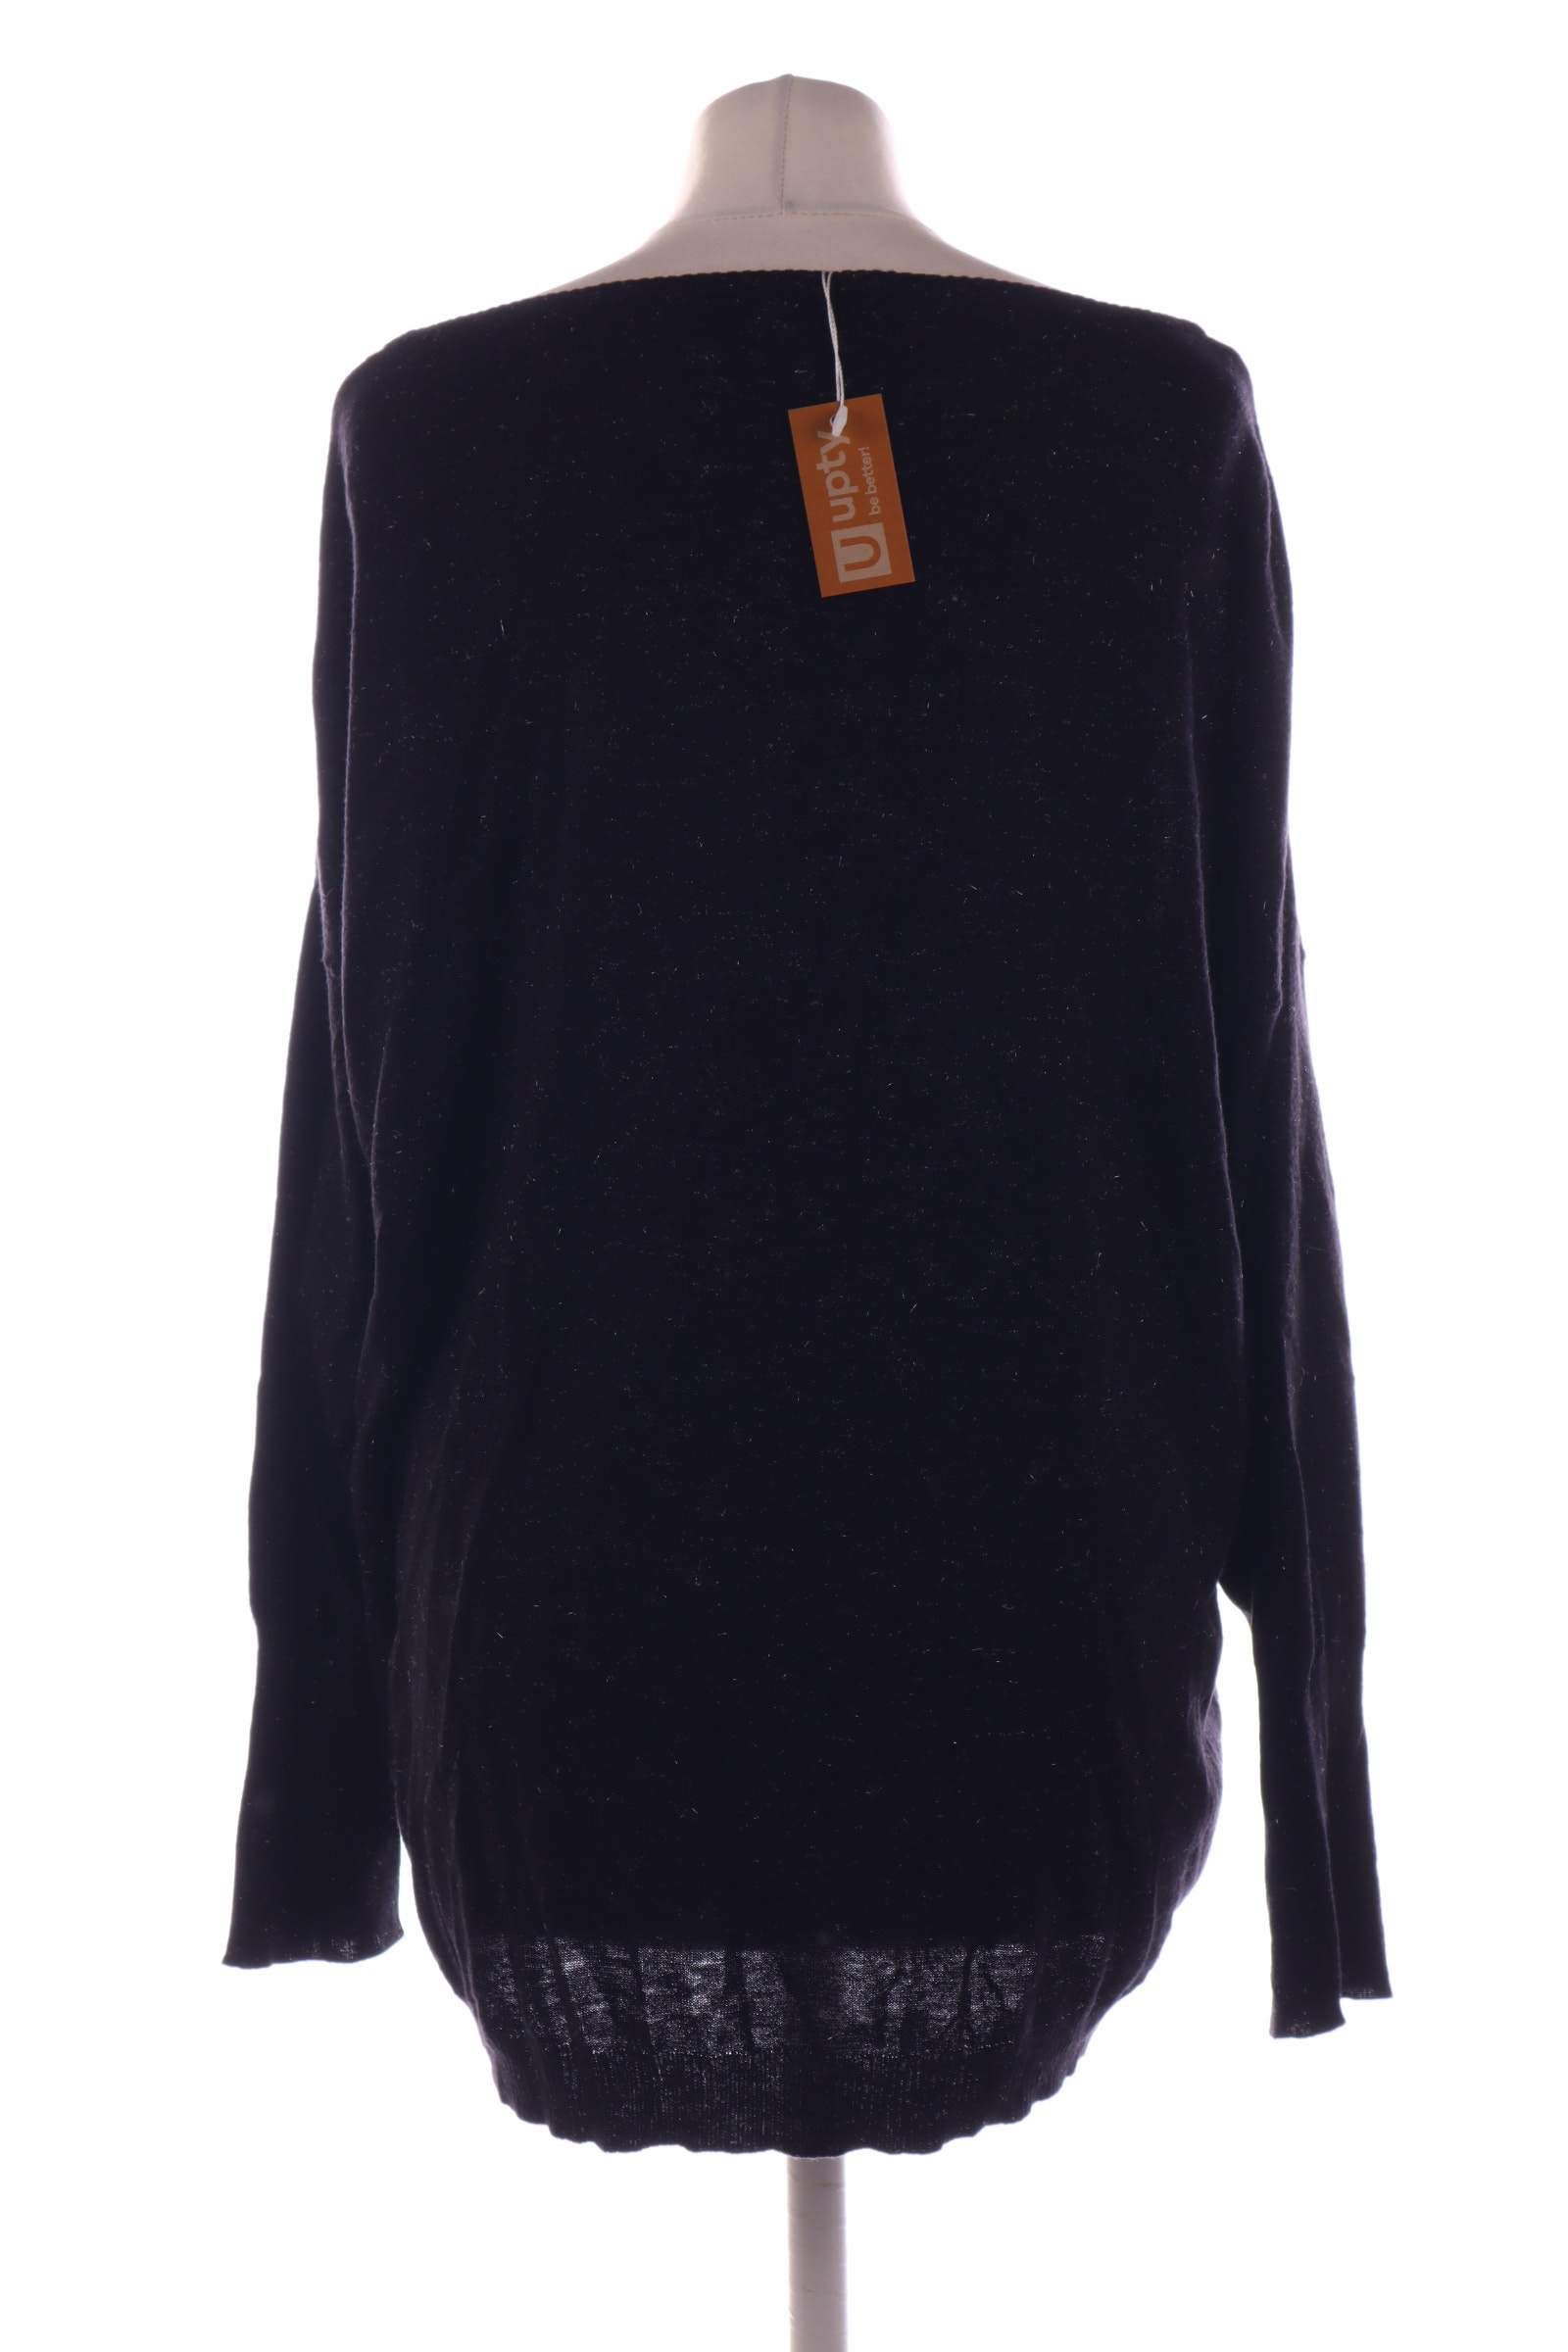 Style & Co Black Sweater - upty.store